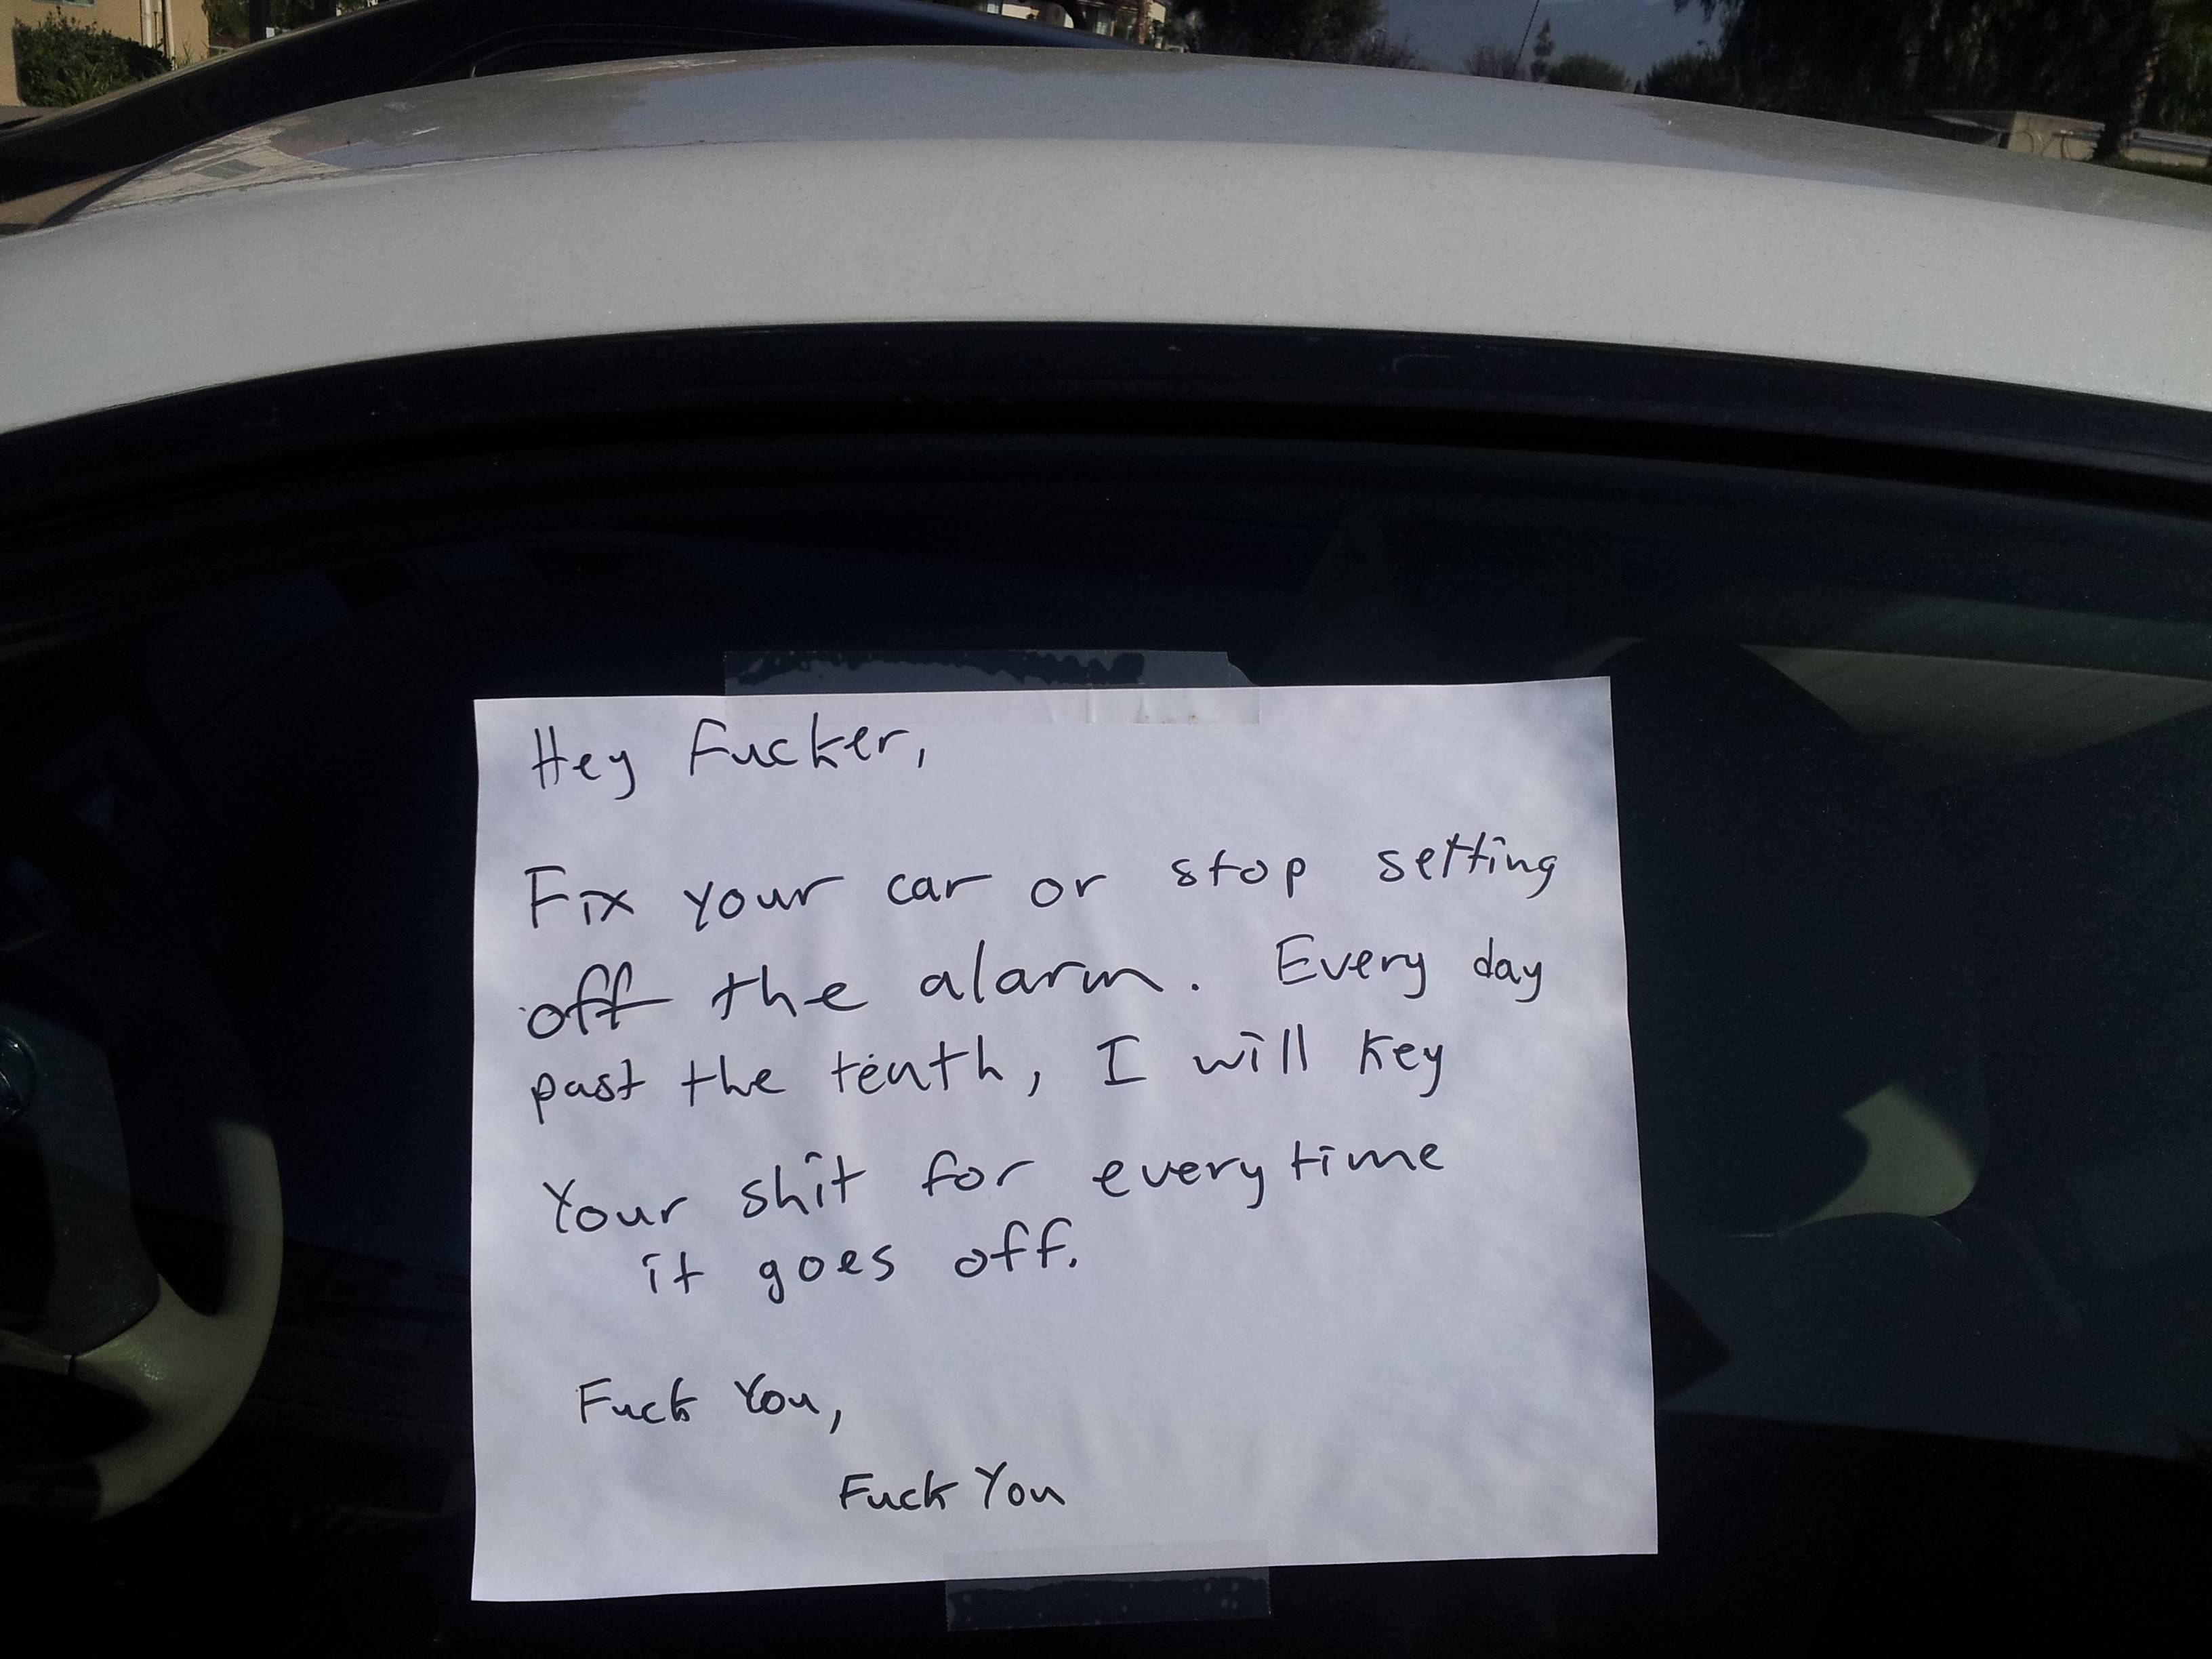 Someone got super pissed about a car alarm. They left a note.